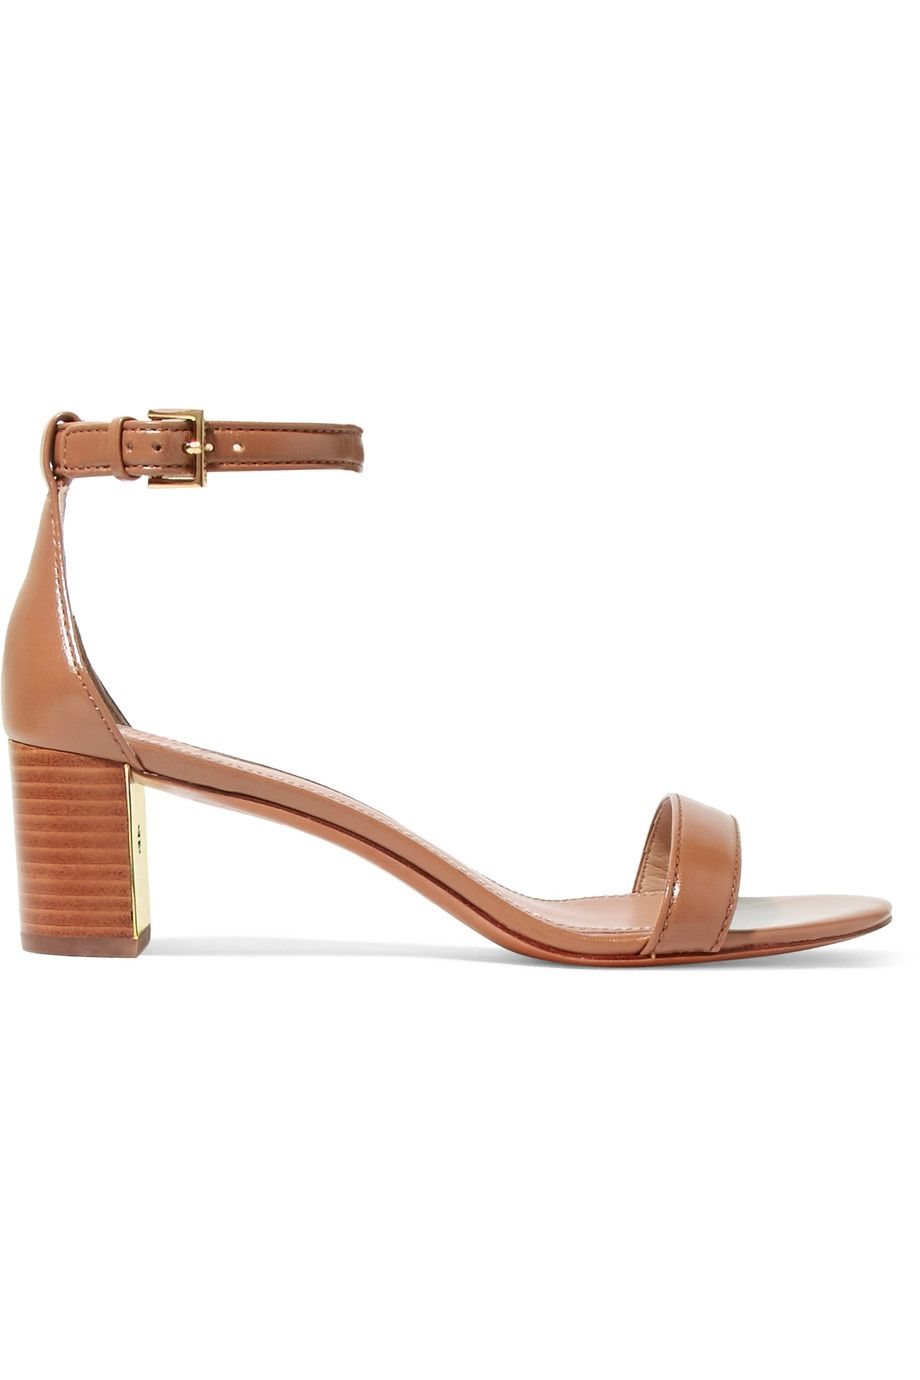 TORY BURCH Cecile leather sandals. #toryburch #shoes #sandals